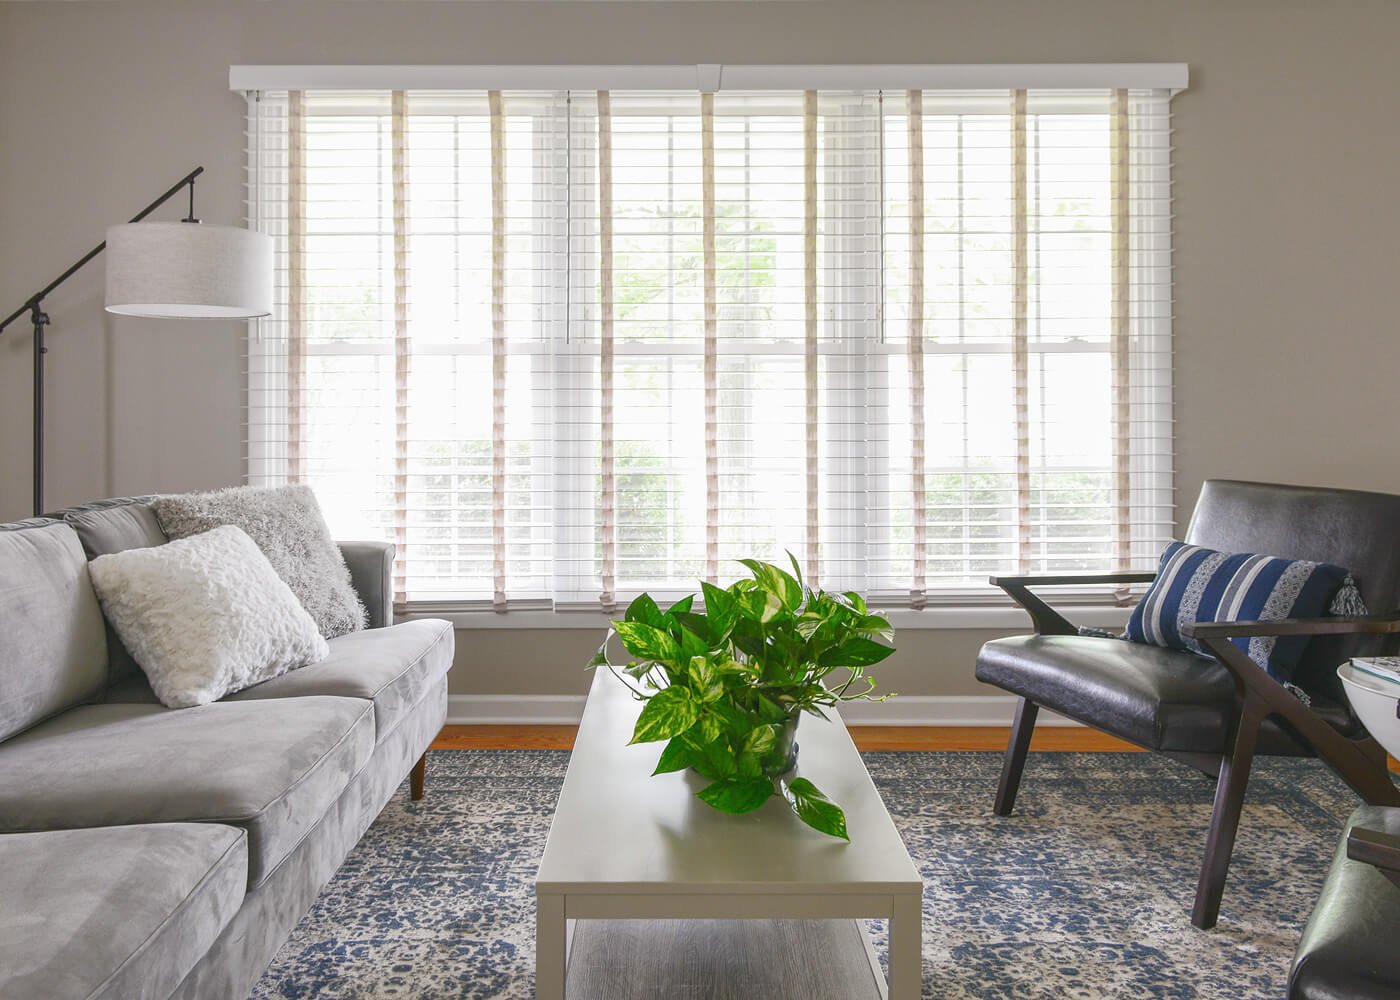 Bali Wood Blinds installed in a living room